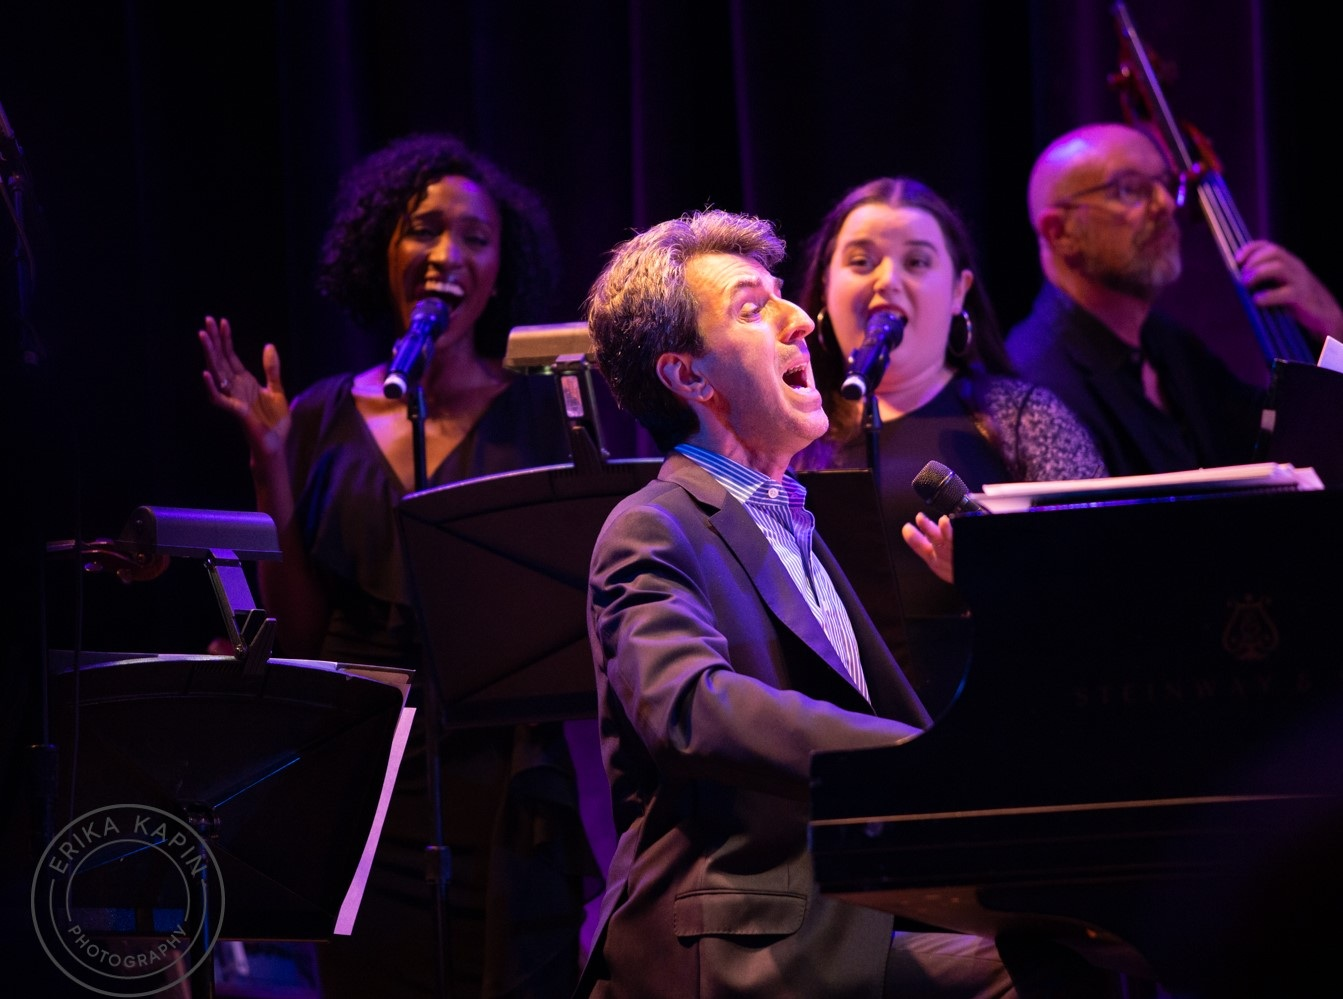 On stage with Jason Robert Brown at Town Hall